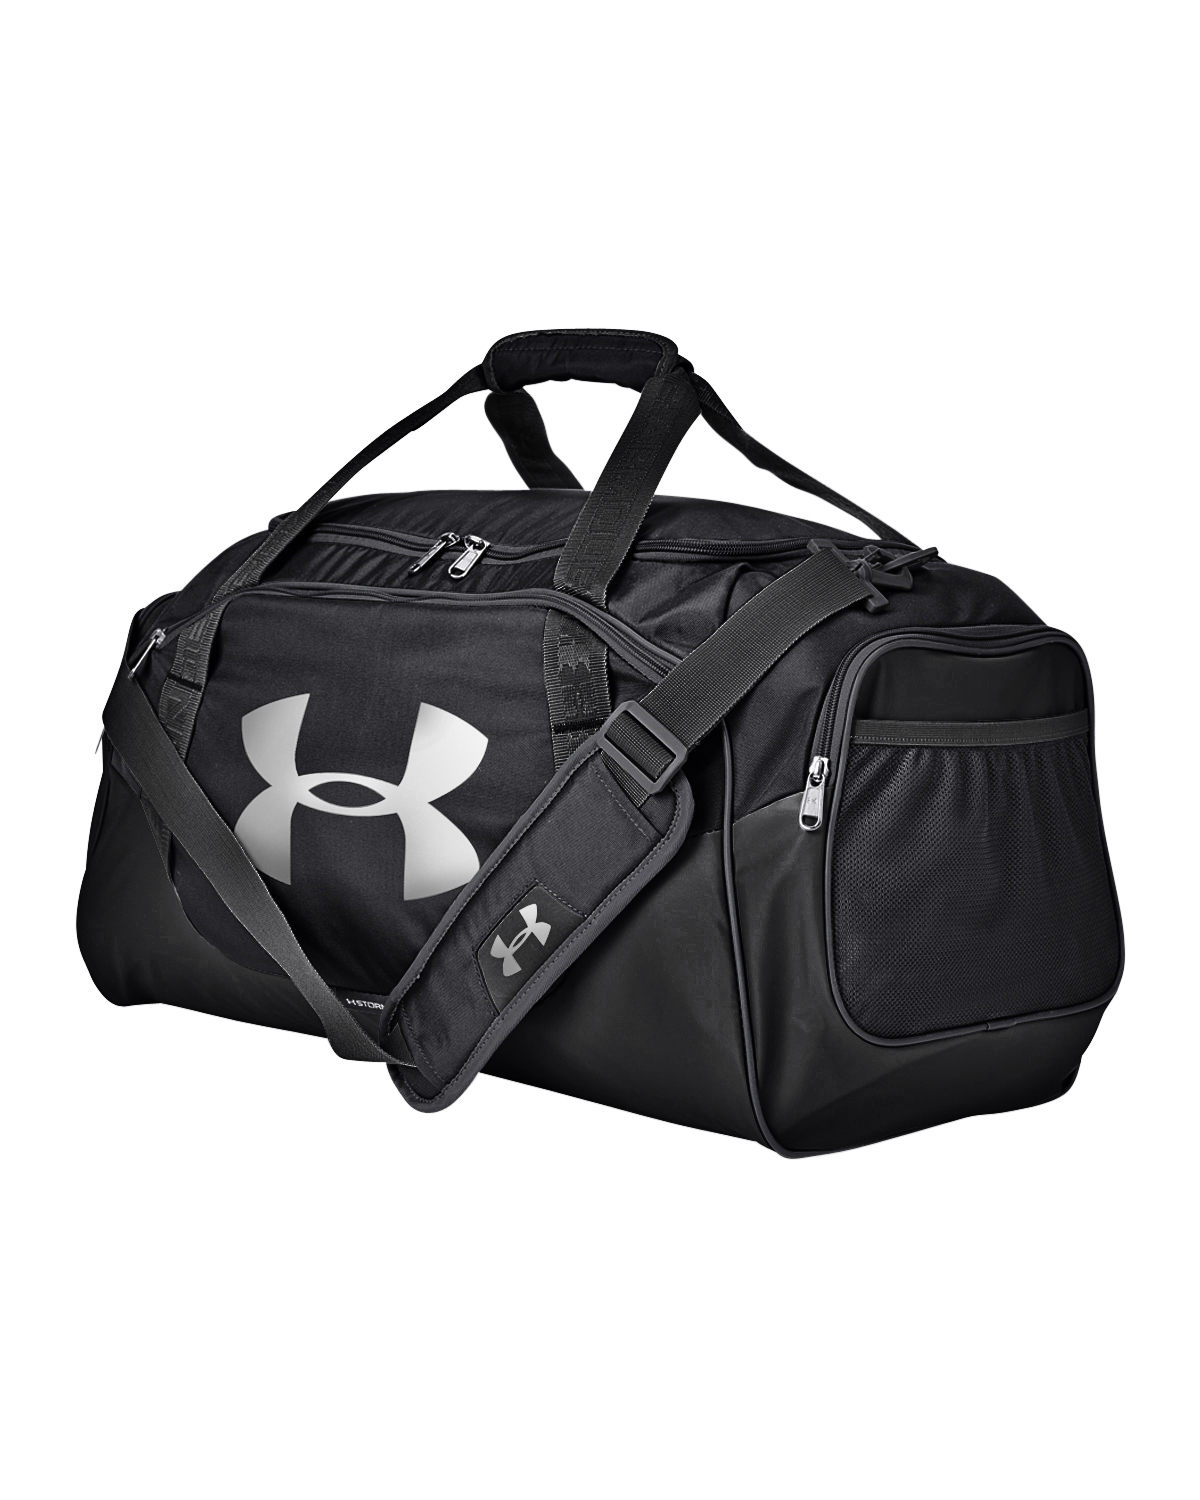 207168a33 Under Armour 1300214 - UA Undeniable Duffle Small $29.99 - Bags